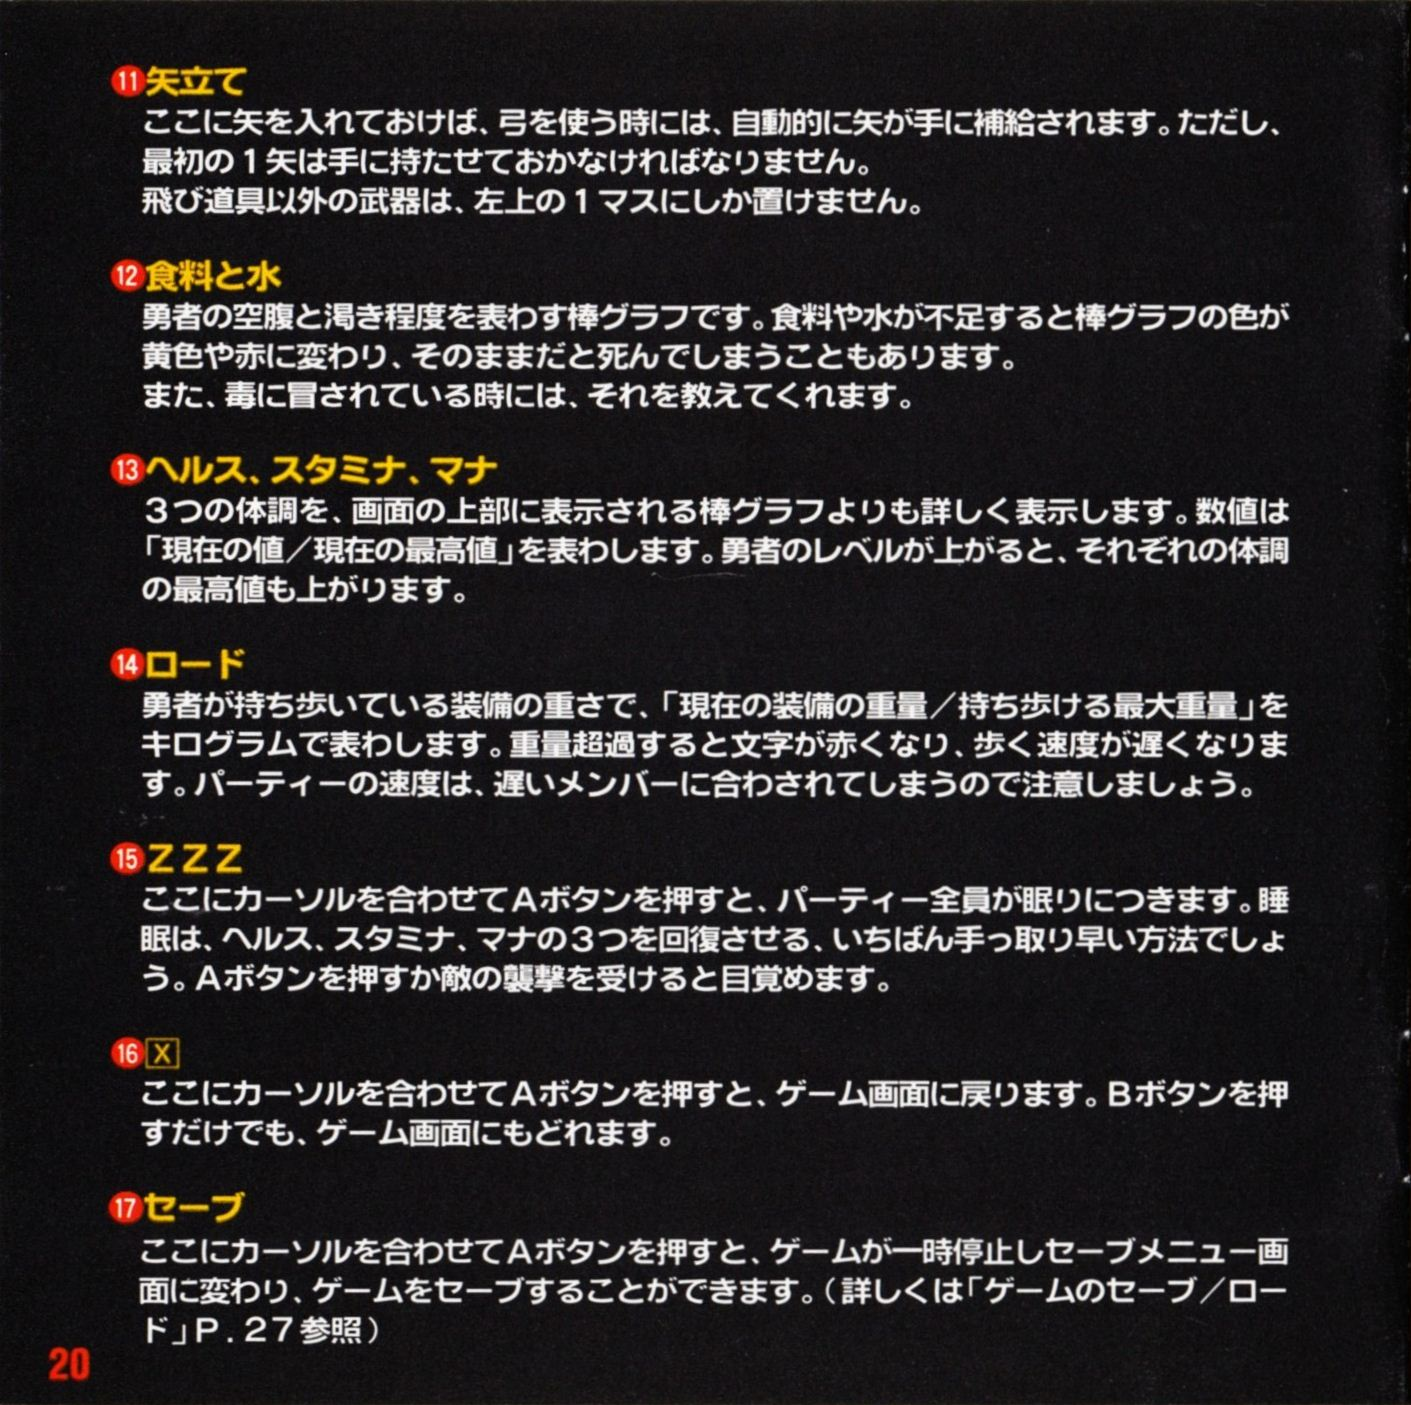 Game - Dungeon Master II - JP - Mega CD - Booklet - Page 022 - Scan